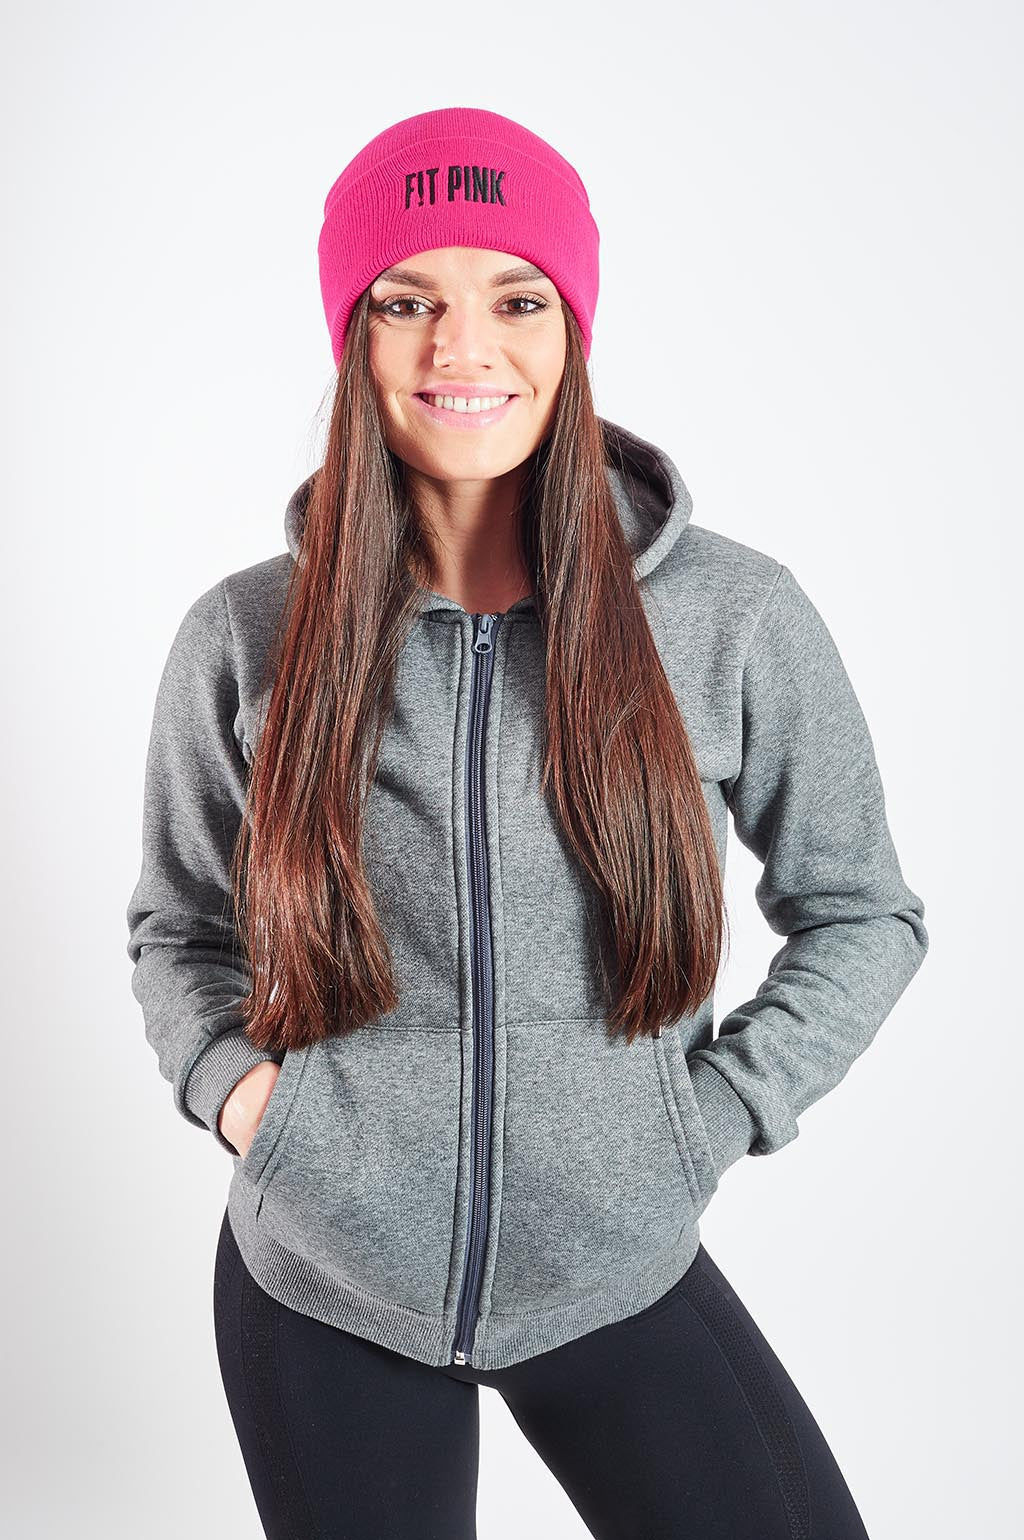 Luxurious FitPink Fleece Hoodie Grey Beanie